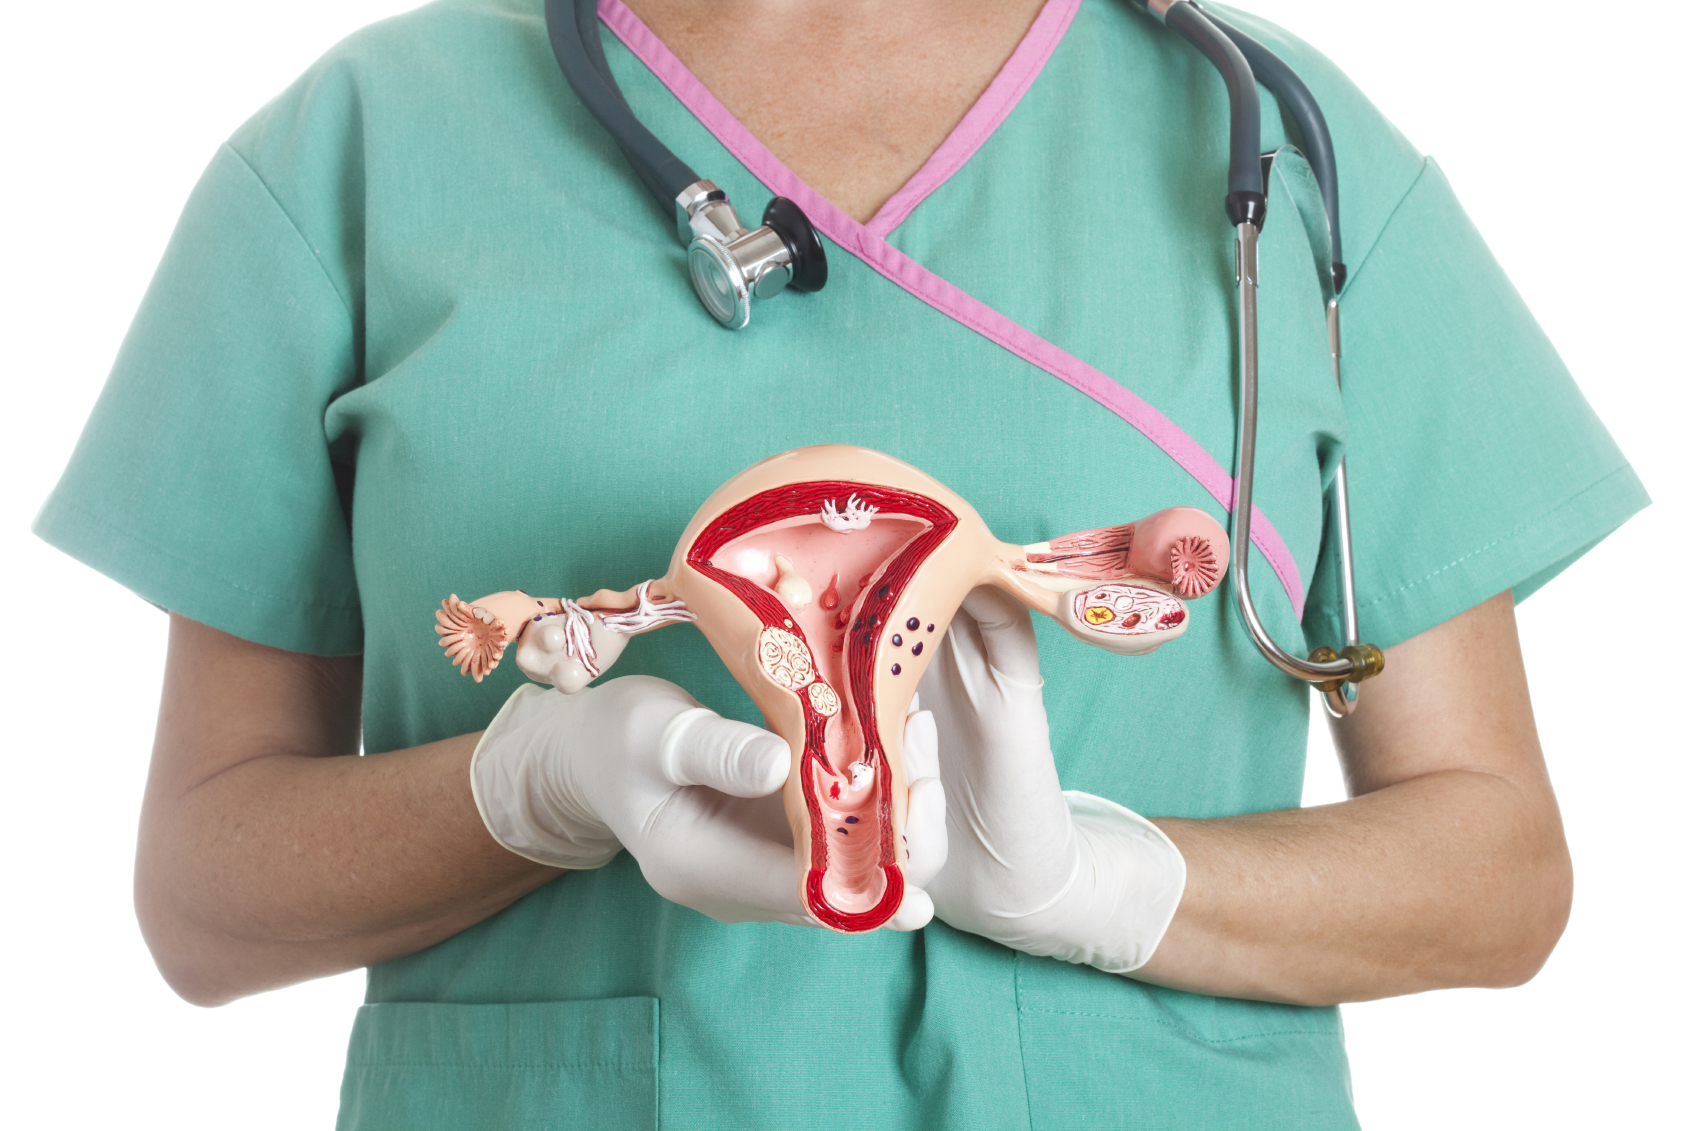 Ovarian Cancer Patients Getting Substandard Care The Boston Globe